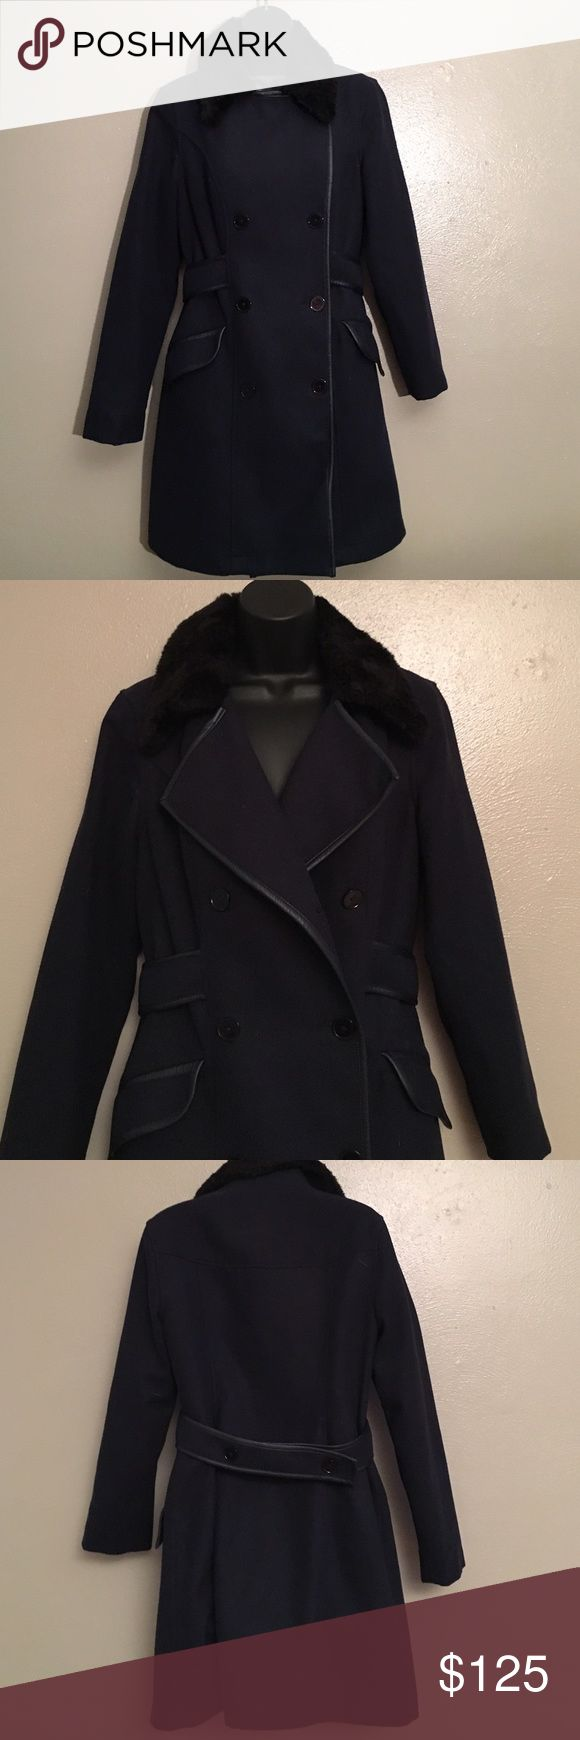 French connection navy blue coat Preowned , very good condition. Double buttons, artificial fur collar French Connection Jackets & Coats